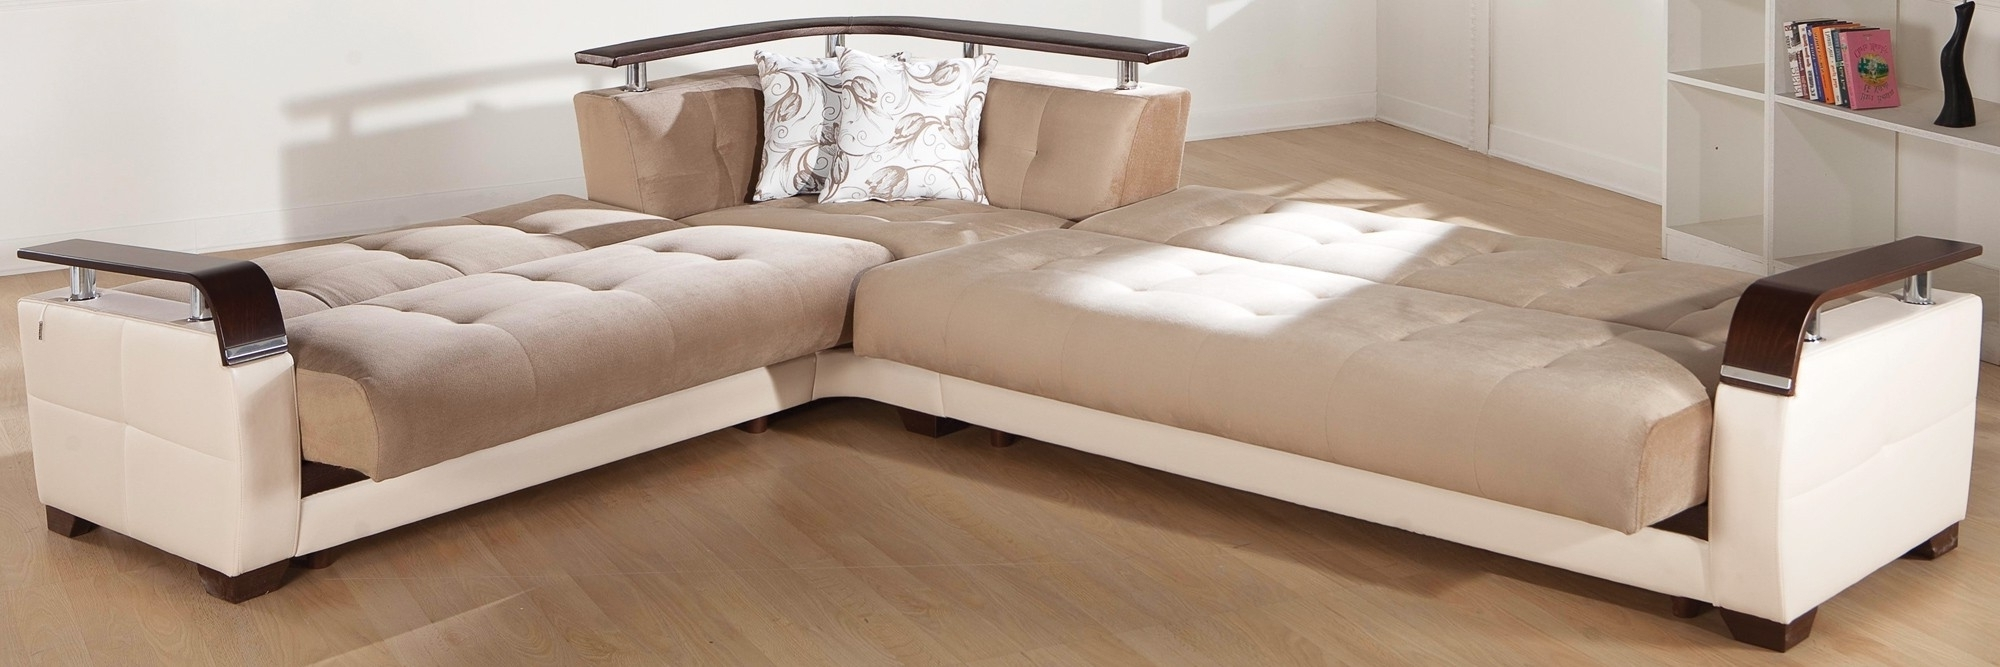 Natural Sectional Sofa Sleeper Contemporary Sectional Sleeper Sofa Inside Widely Used Sectional Sofas With Sleeper (View 13 of 20)